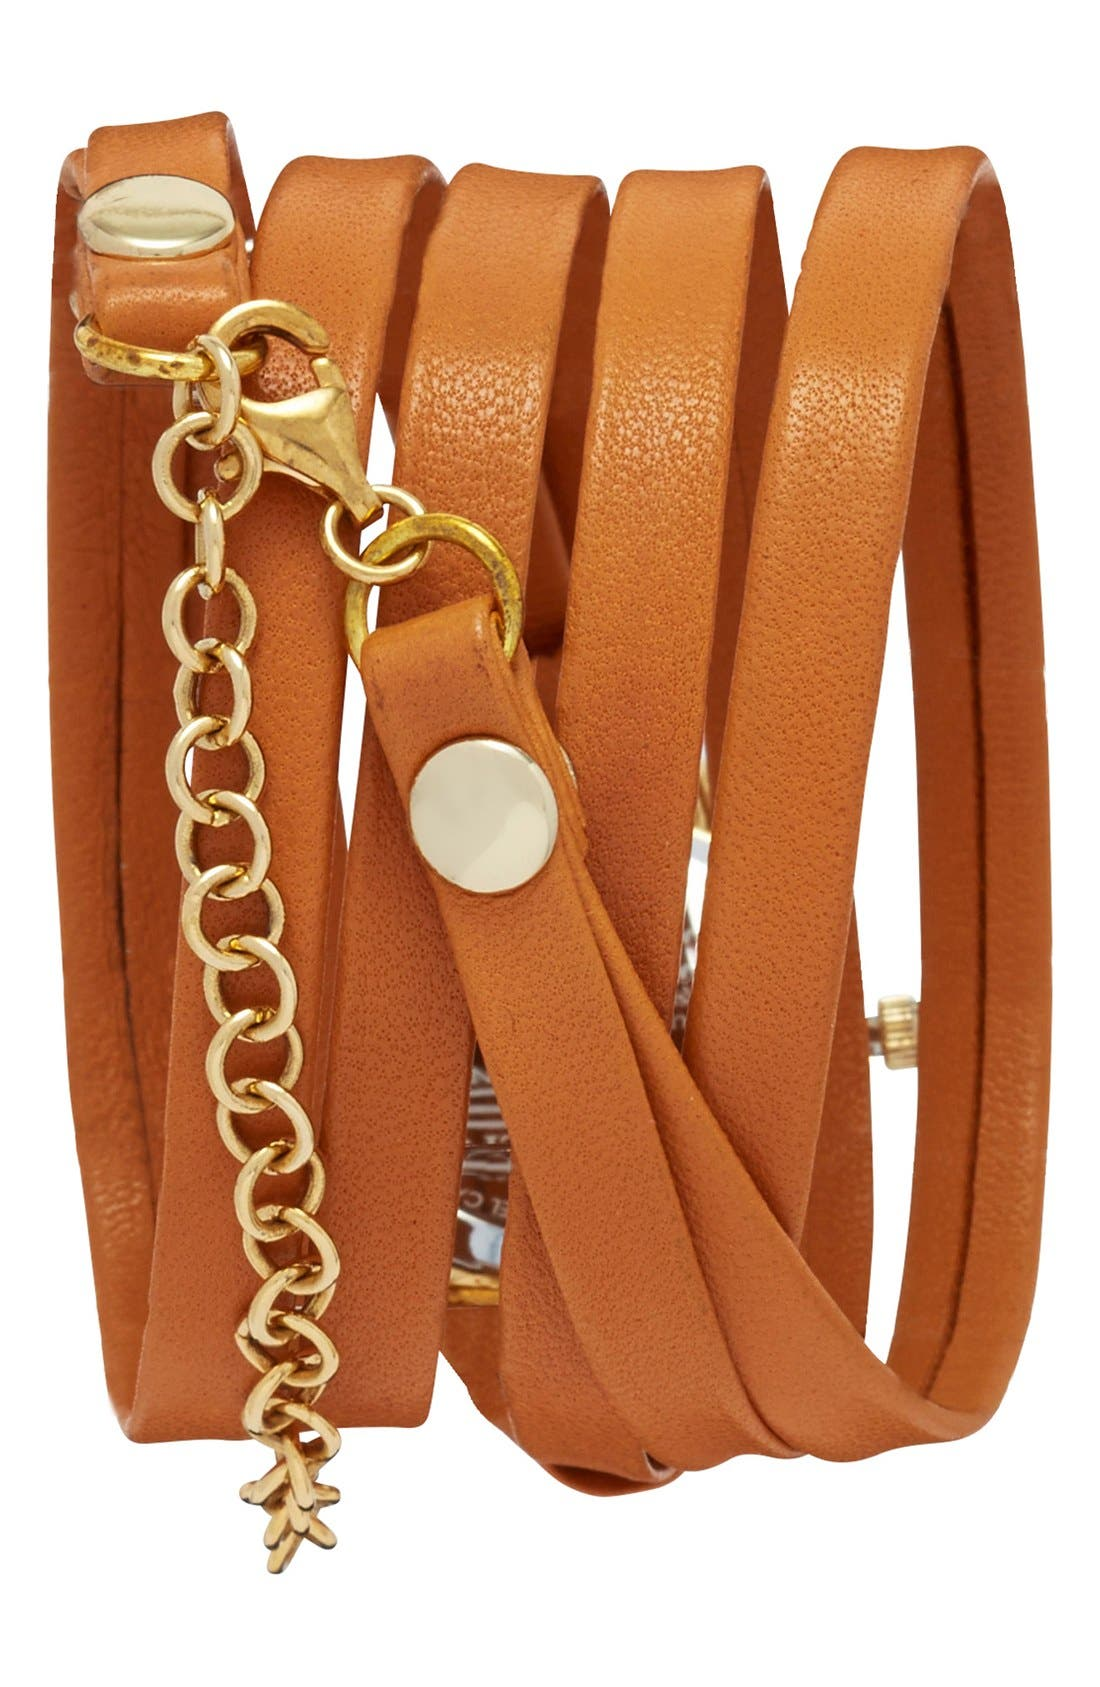 LA MER COLLECTIONS, 'Saturn' Round Leather Wrap Watch, 32mm, Alternate thumbnail 2, color, 200